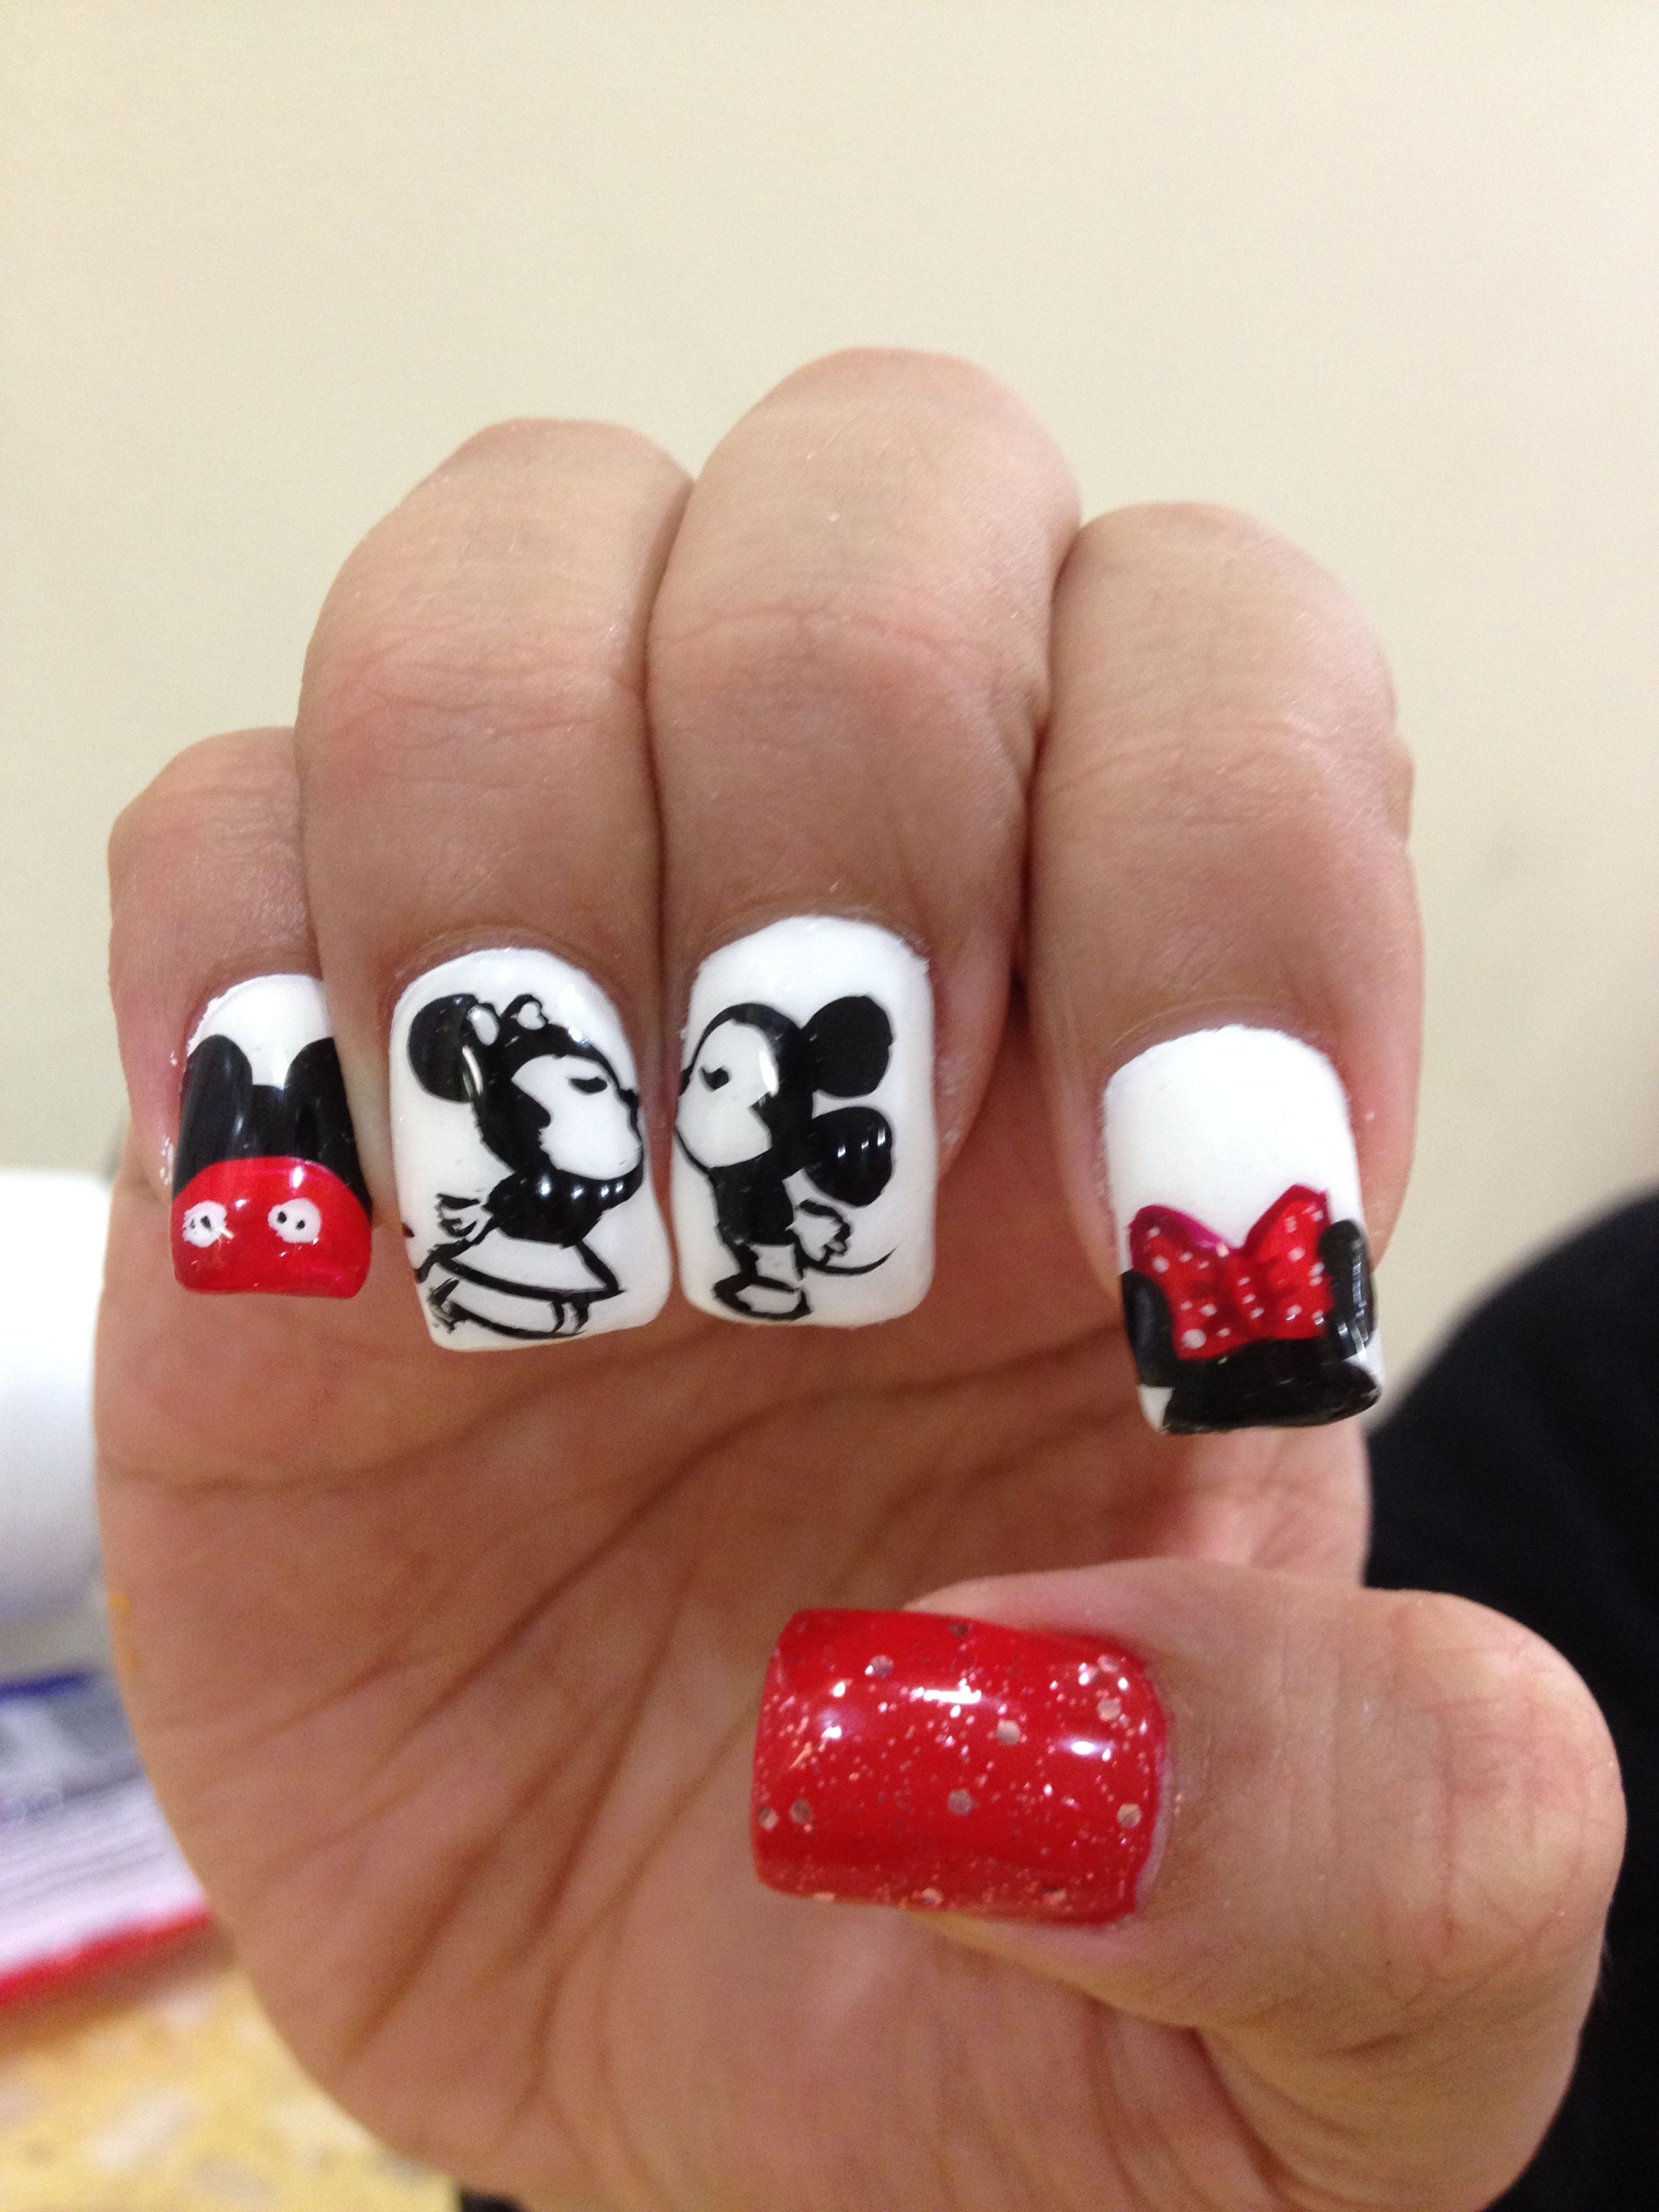 Mickey/Minnie Mouse Nails - Nails | Pinterest - Gelnagels